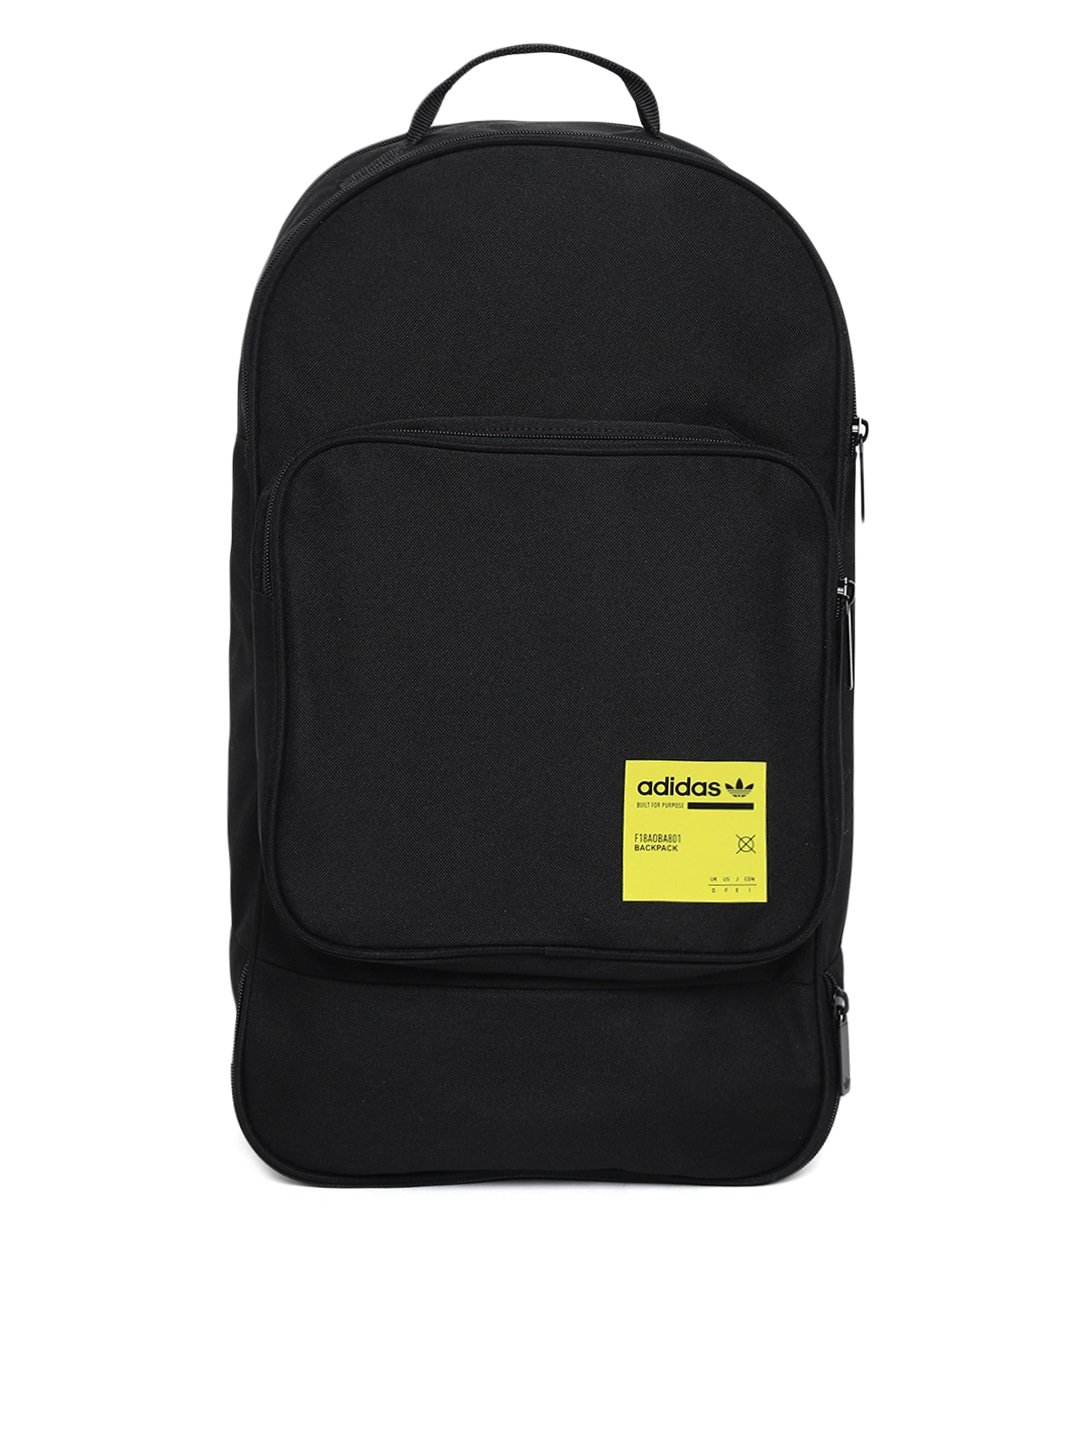 6260e0654d Adidas Original Backpacks - Buy Adidas Original Backpacks Online in India